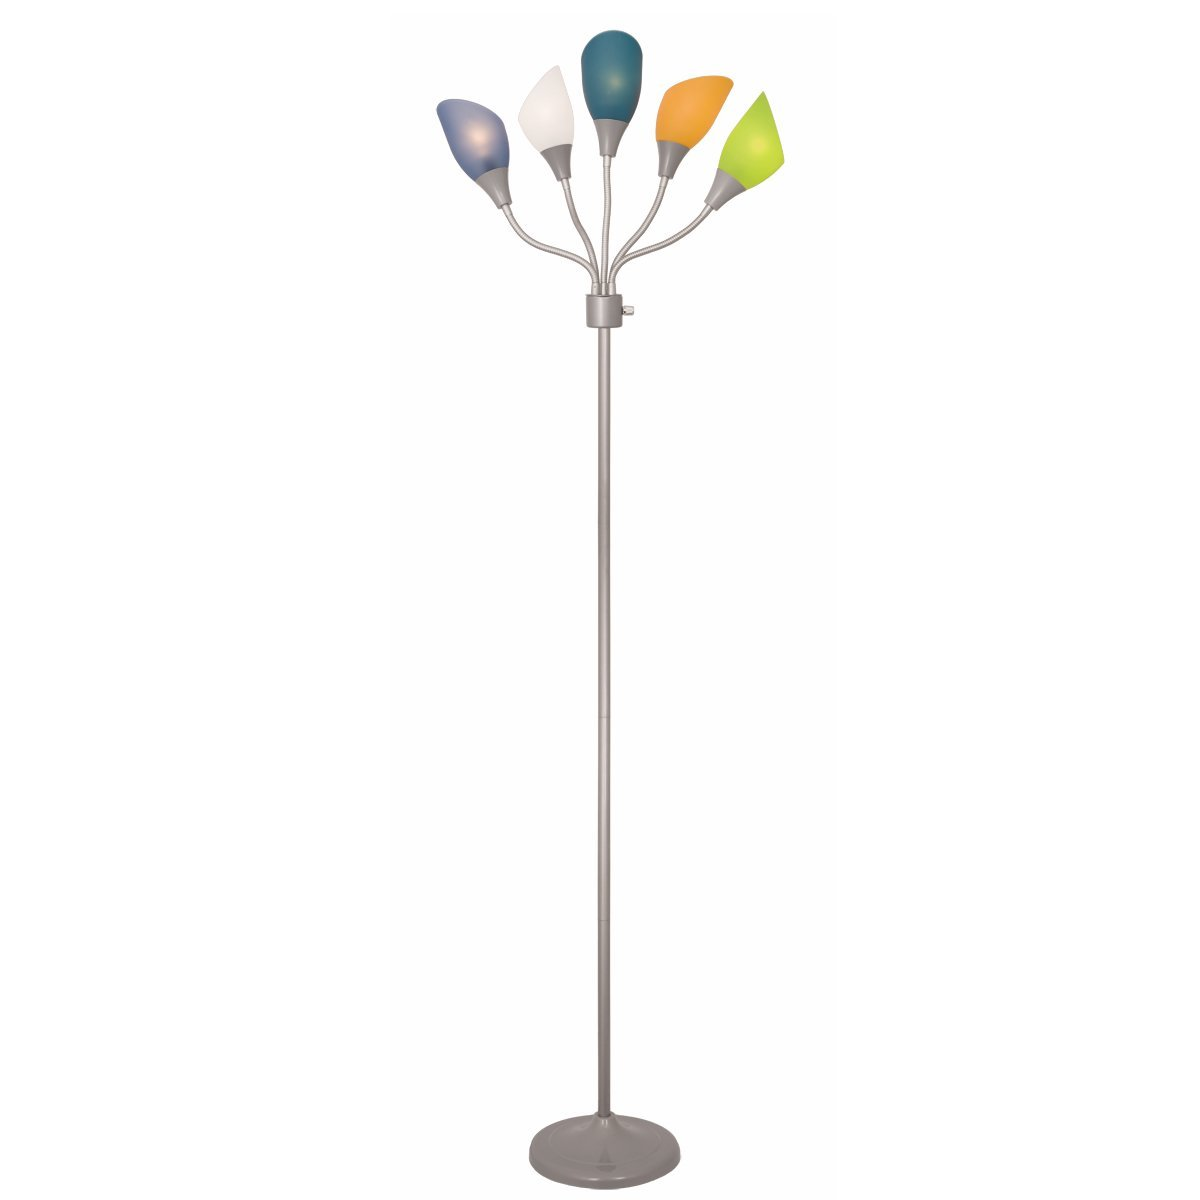 Light Accents Medusa Grey Floor Lamp with Multicolor Acrylic Shades by Lightaccents